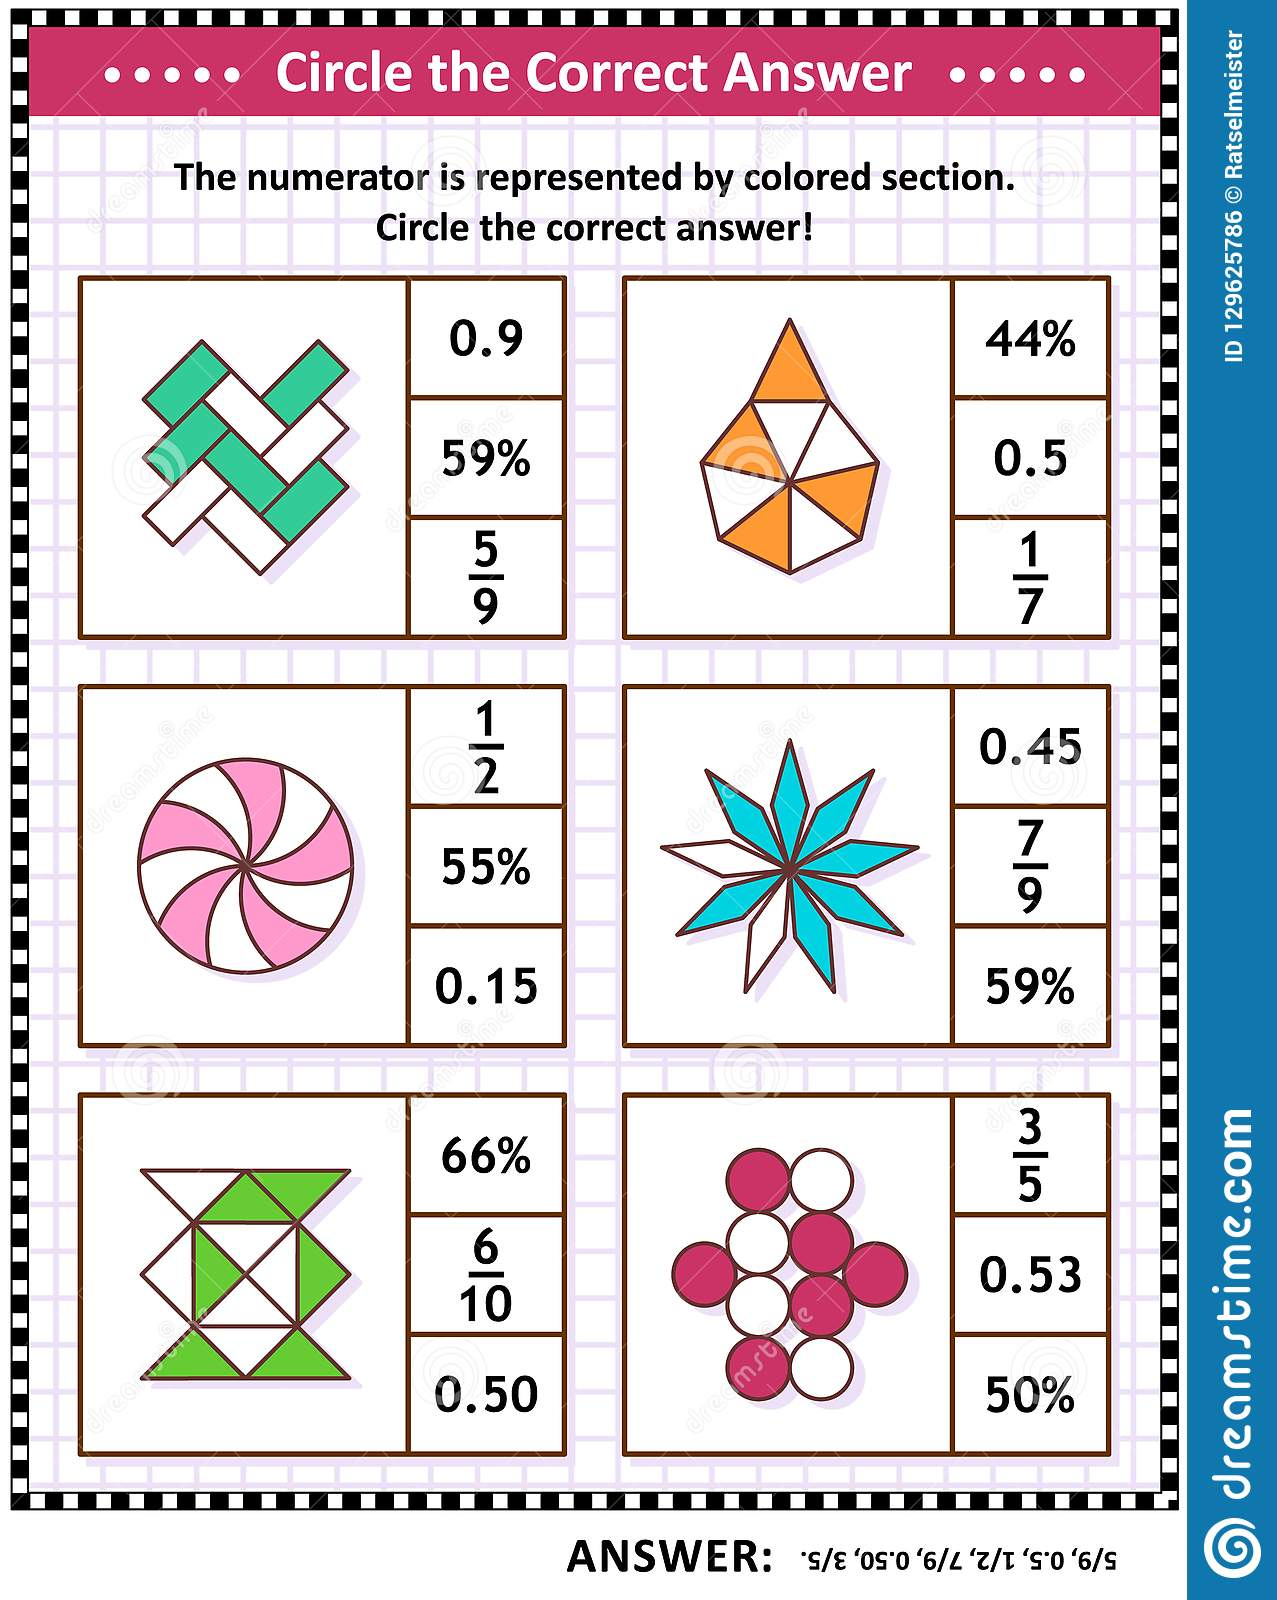 Math Skills Training Puzzle Or Worksheet With Visual Fractions Stock Vector